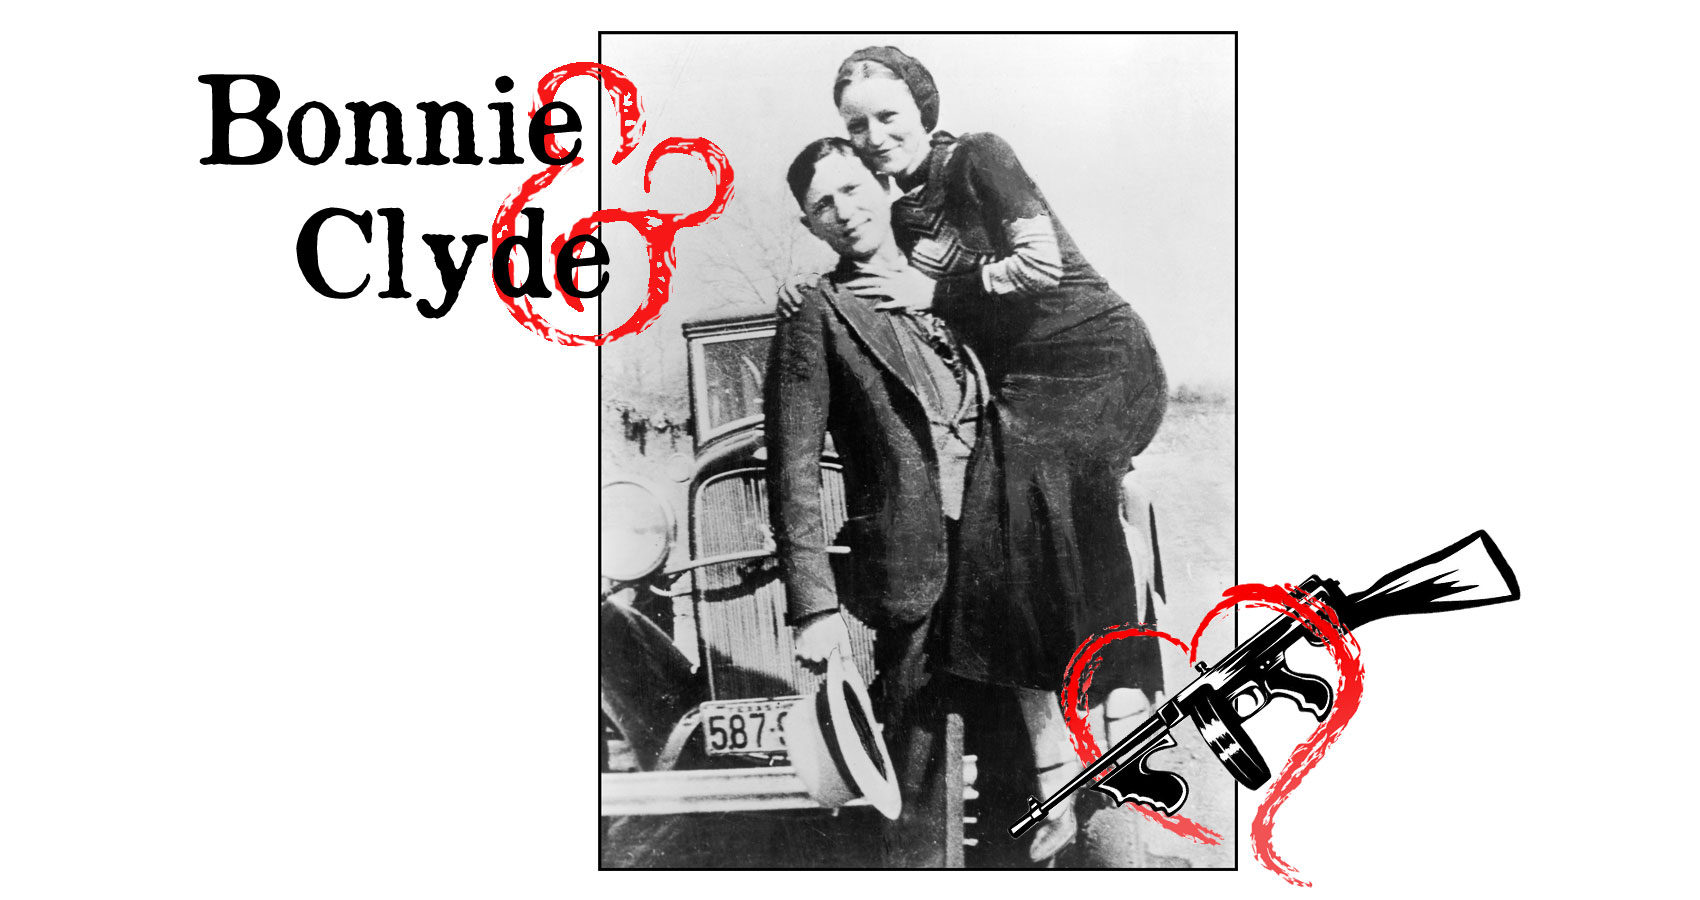 Bonnie & Clyde by Leanne Yeoman at Spillwords.com